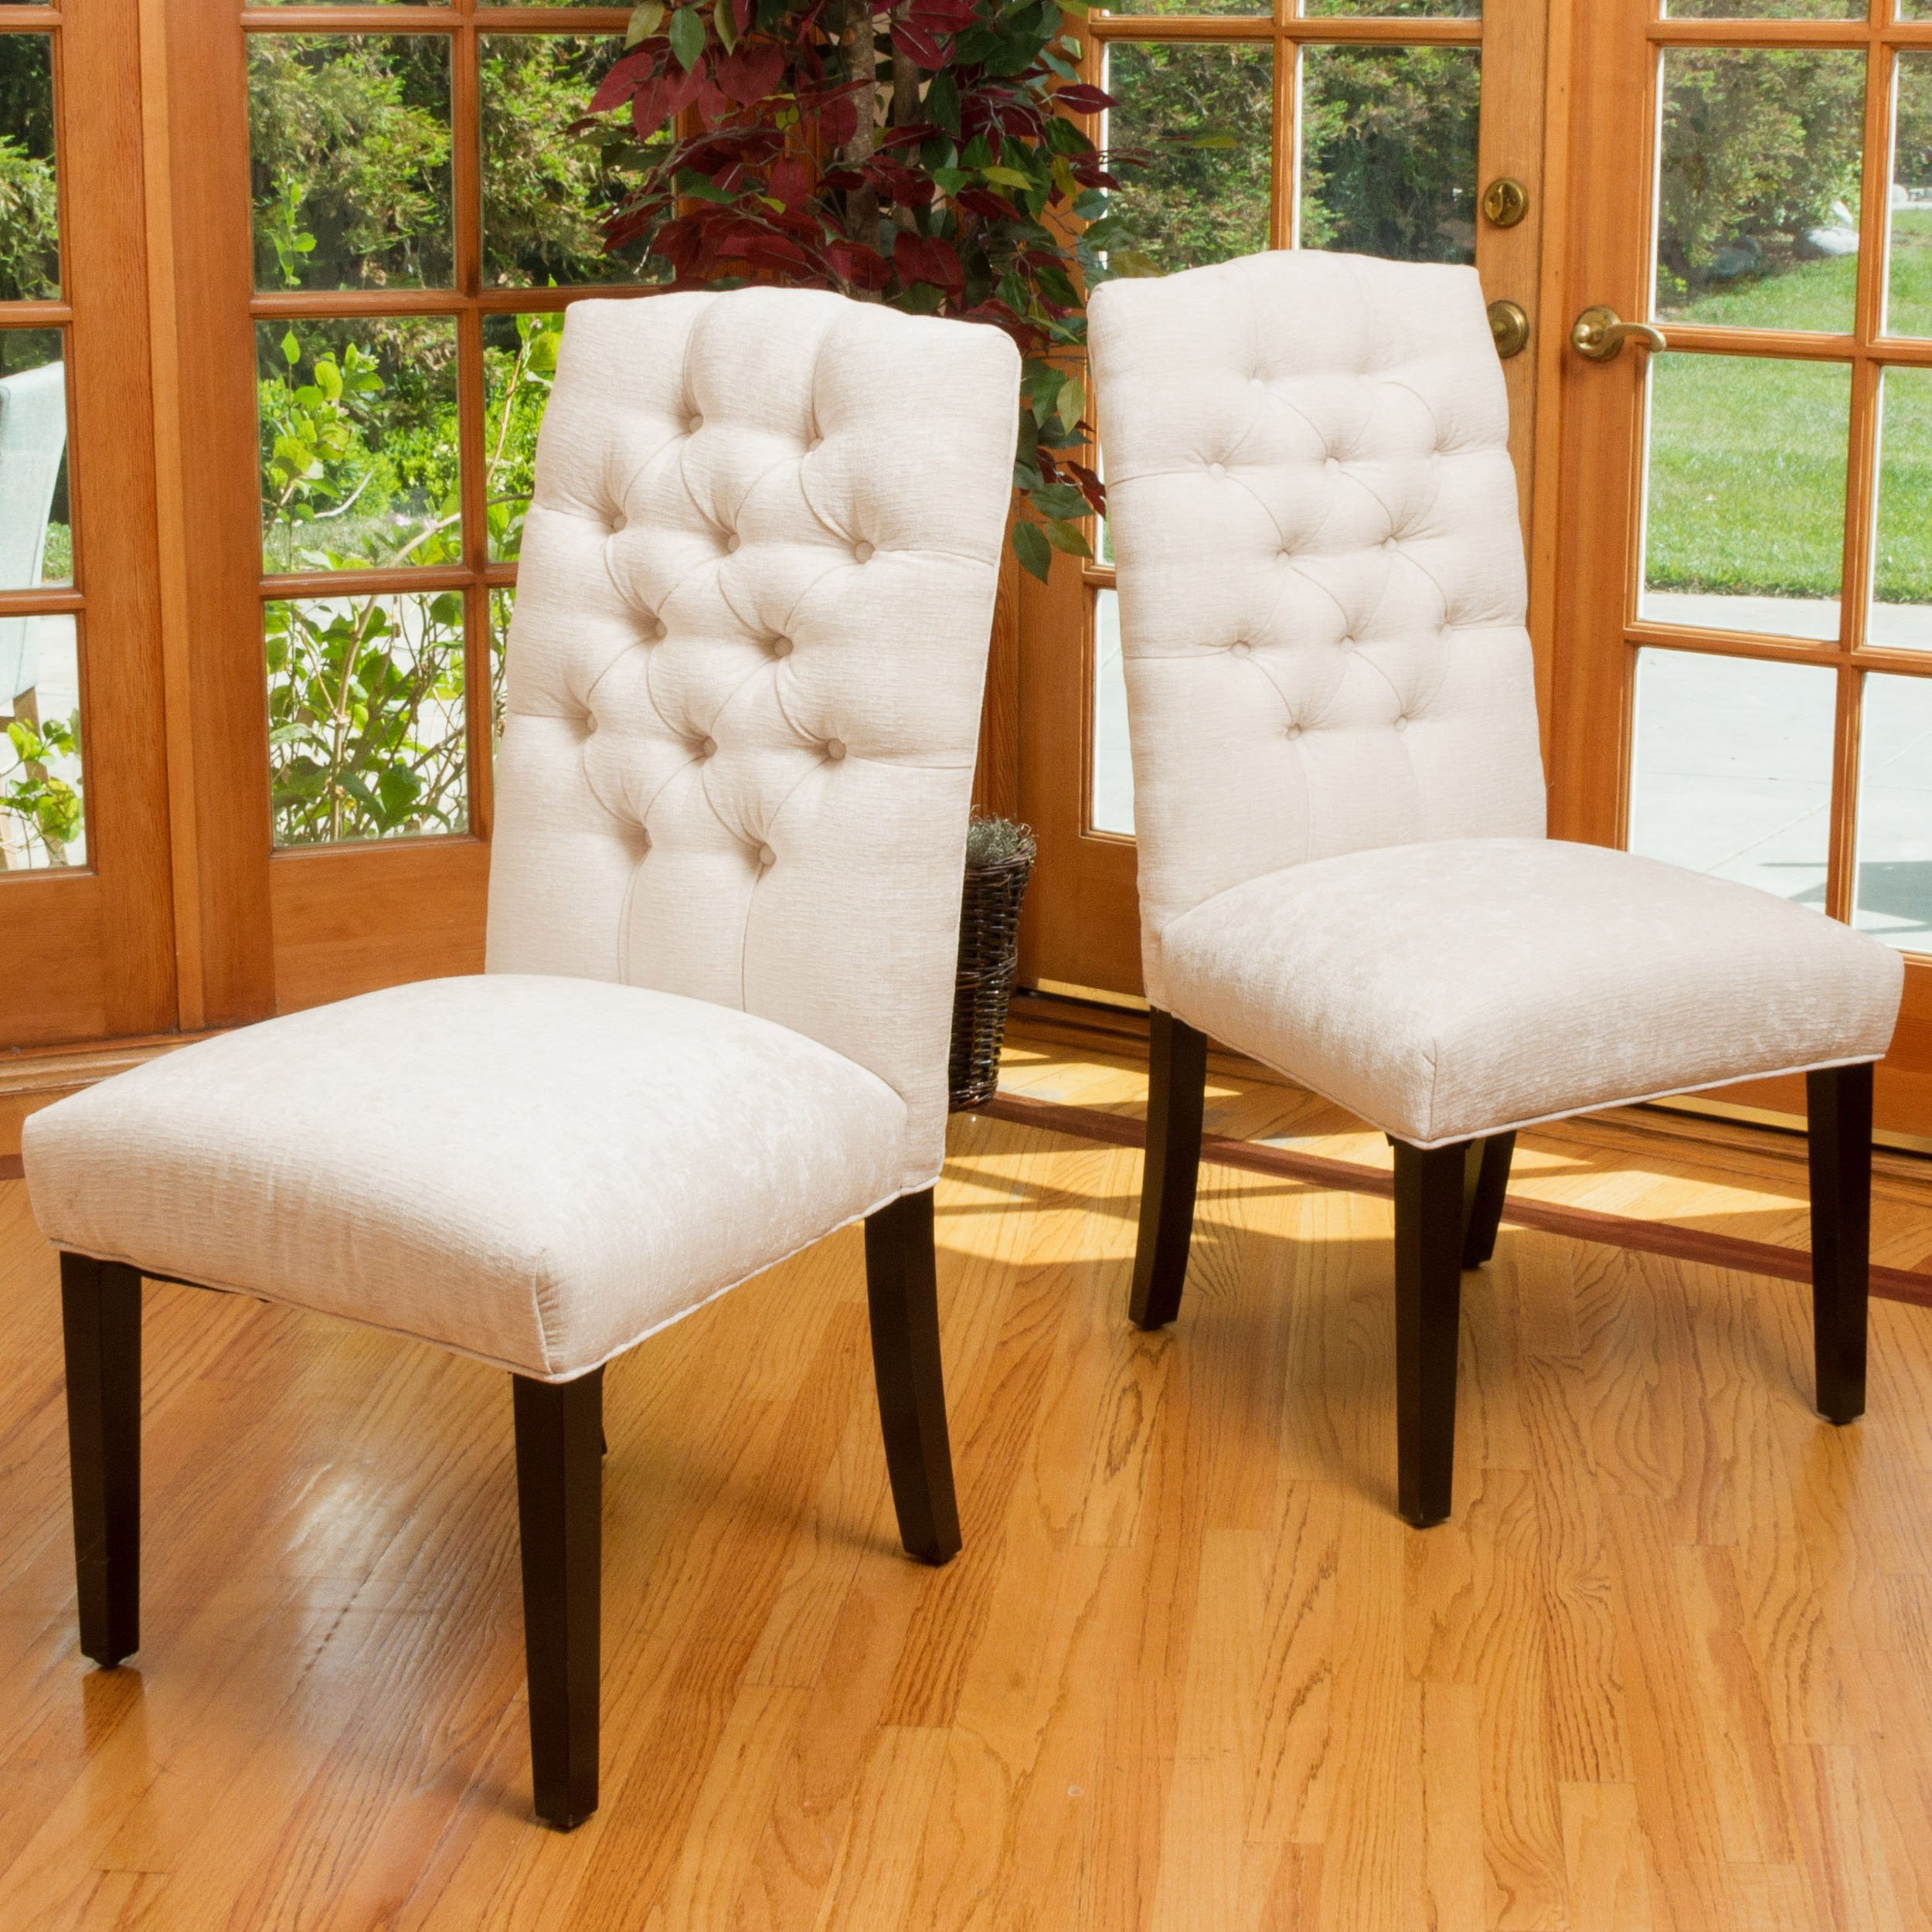 Christopher Knight Home 295076 Crown Top Dining Chair (Set of 2), Ivory by Christopher Knight Home